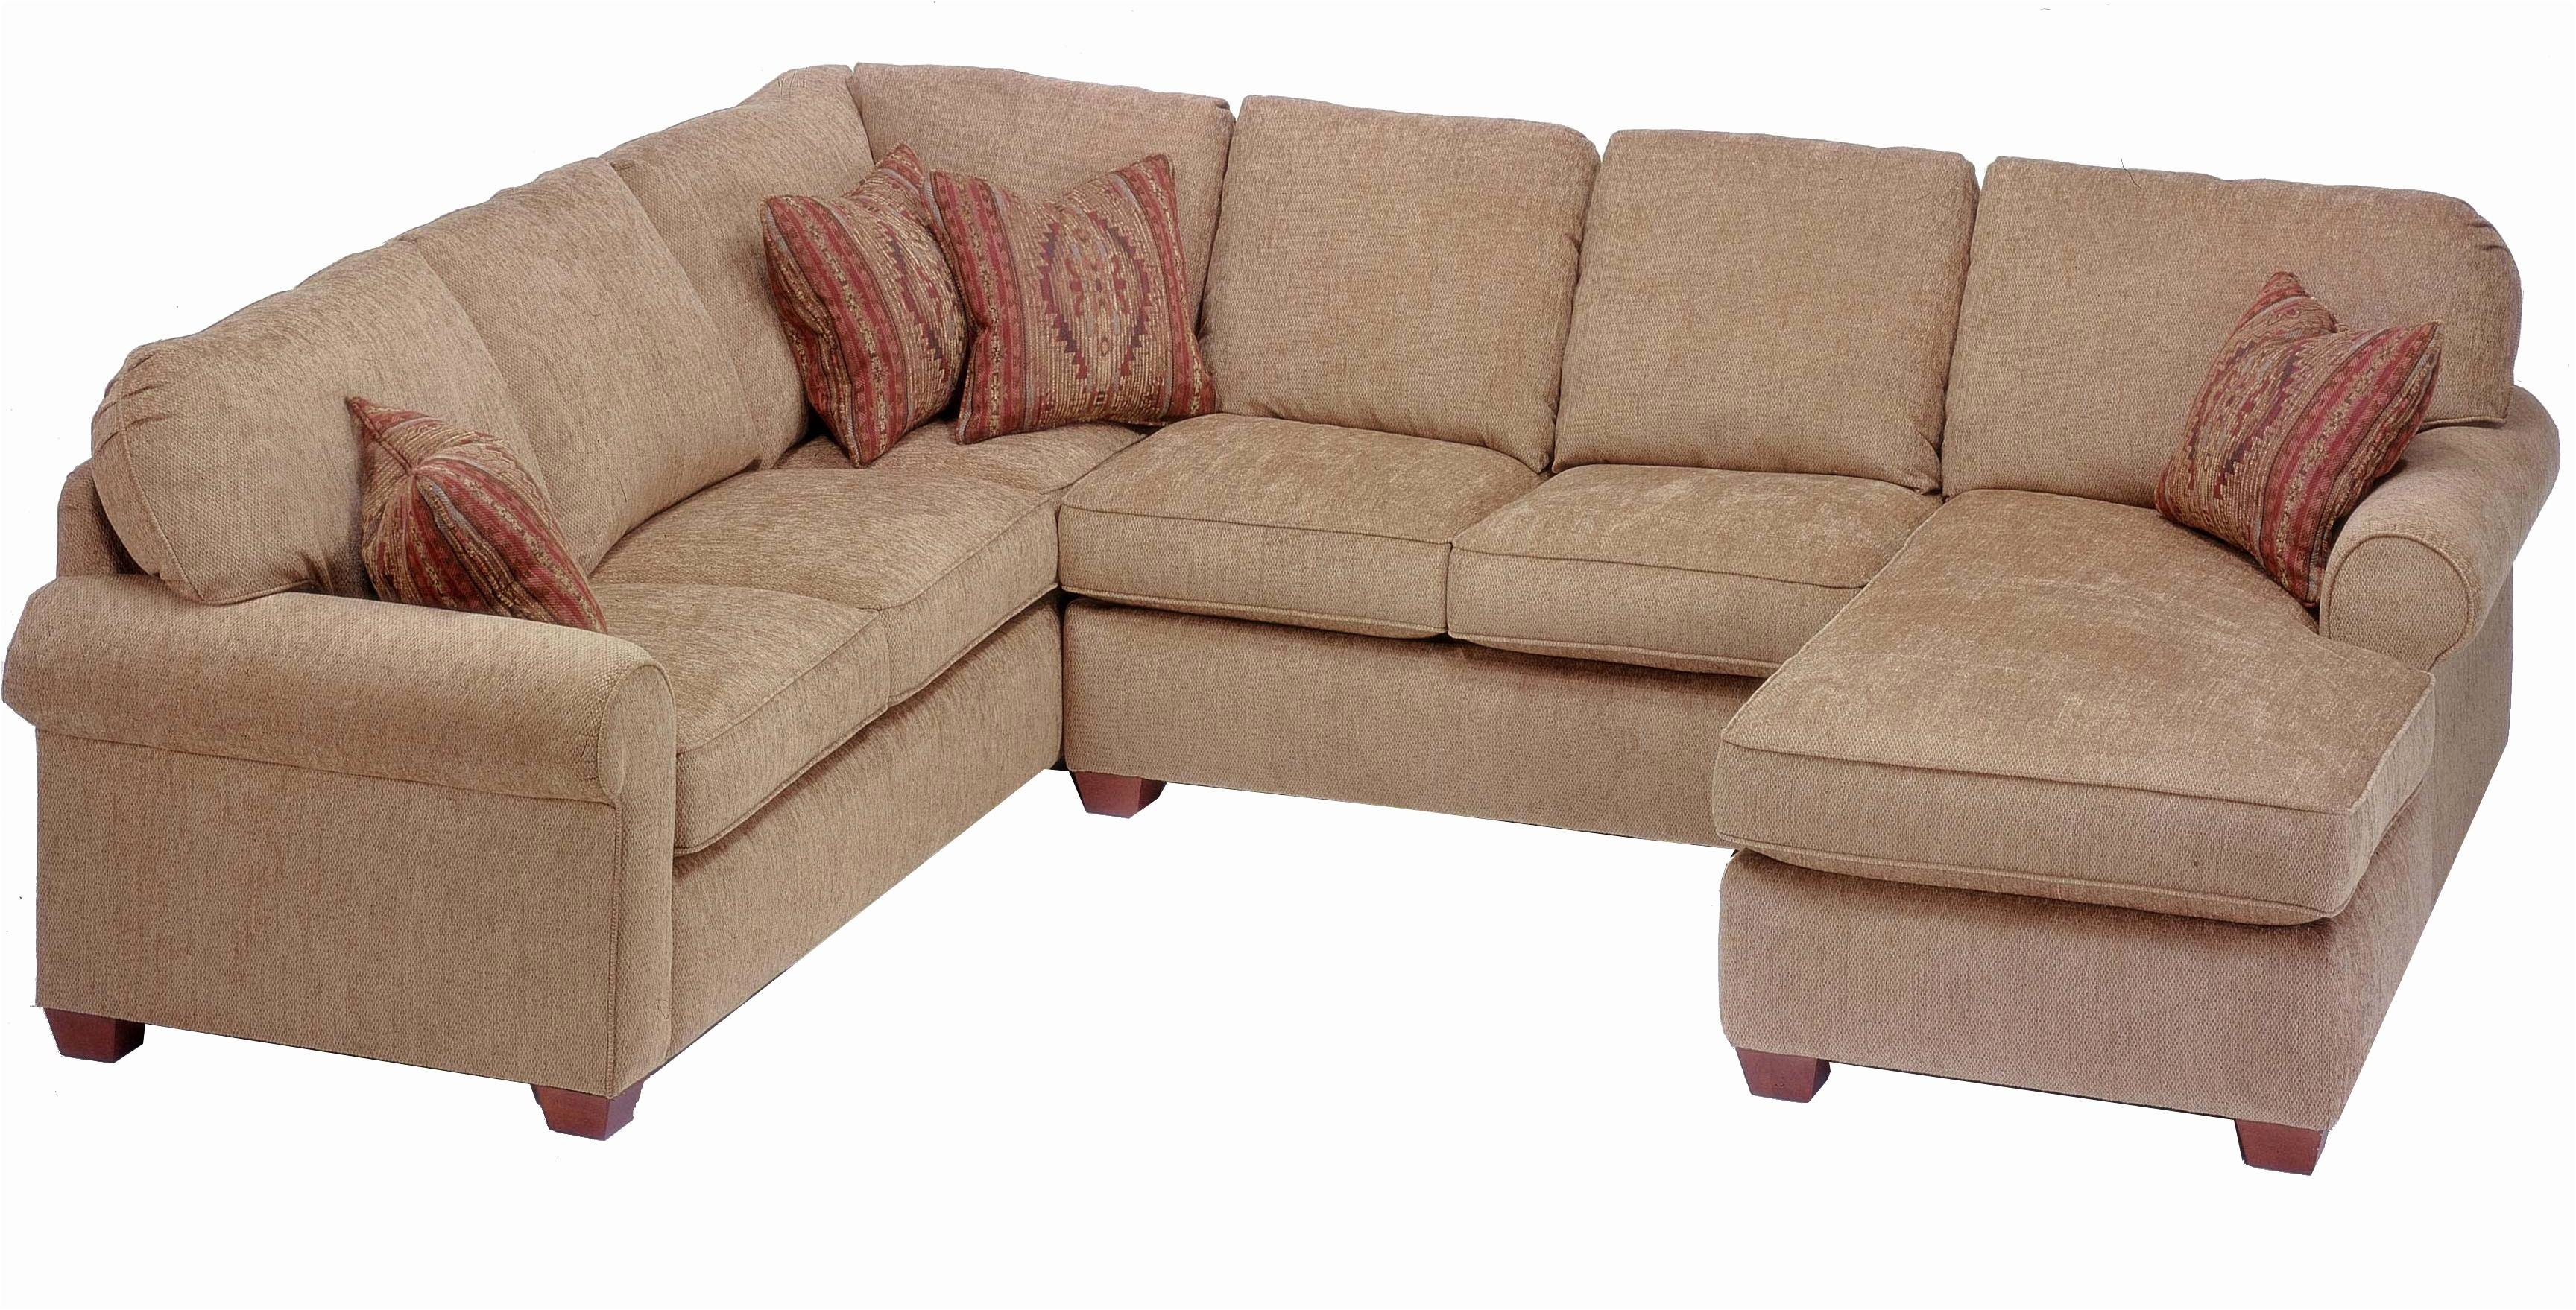 Alan White Sofa Luxury Flexsteel Thornton 3 Piece Sectional With with Alan White Sofas (Image 11 of 15)